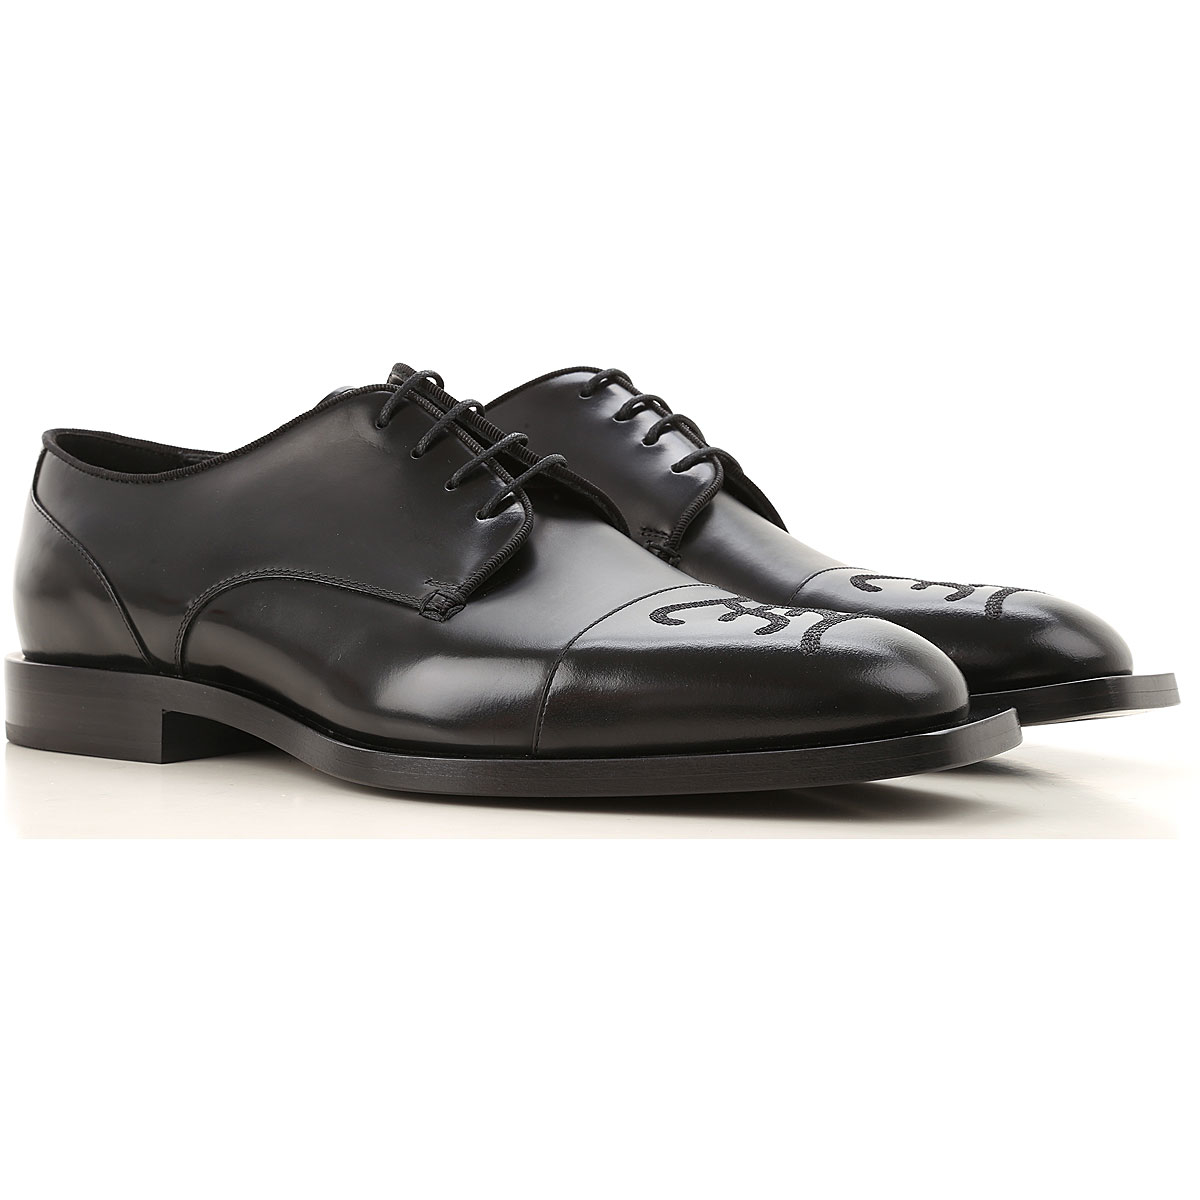 Fendi Lace Up Shoes for Men Oxfords Derbies and Brogues Canada - GOOFASH - Mens FORMAL SHOES